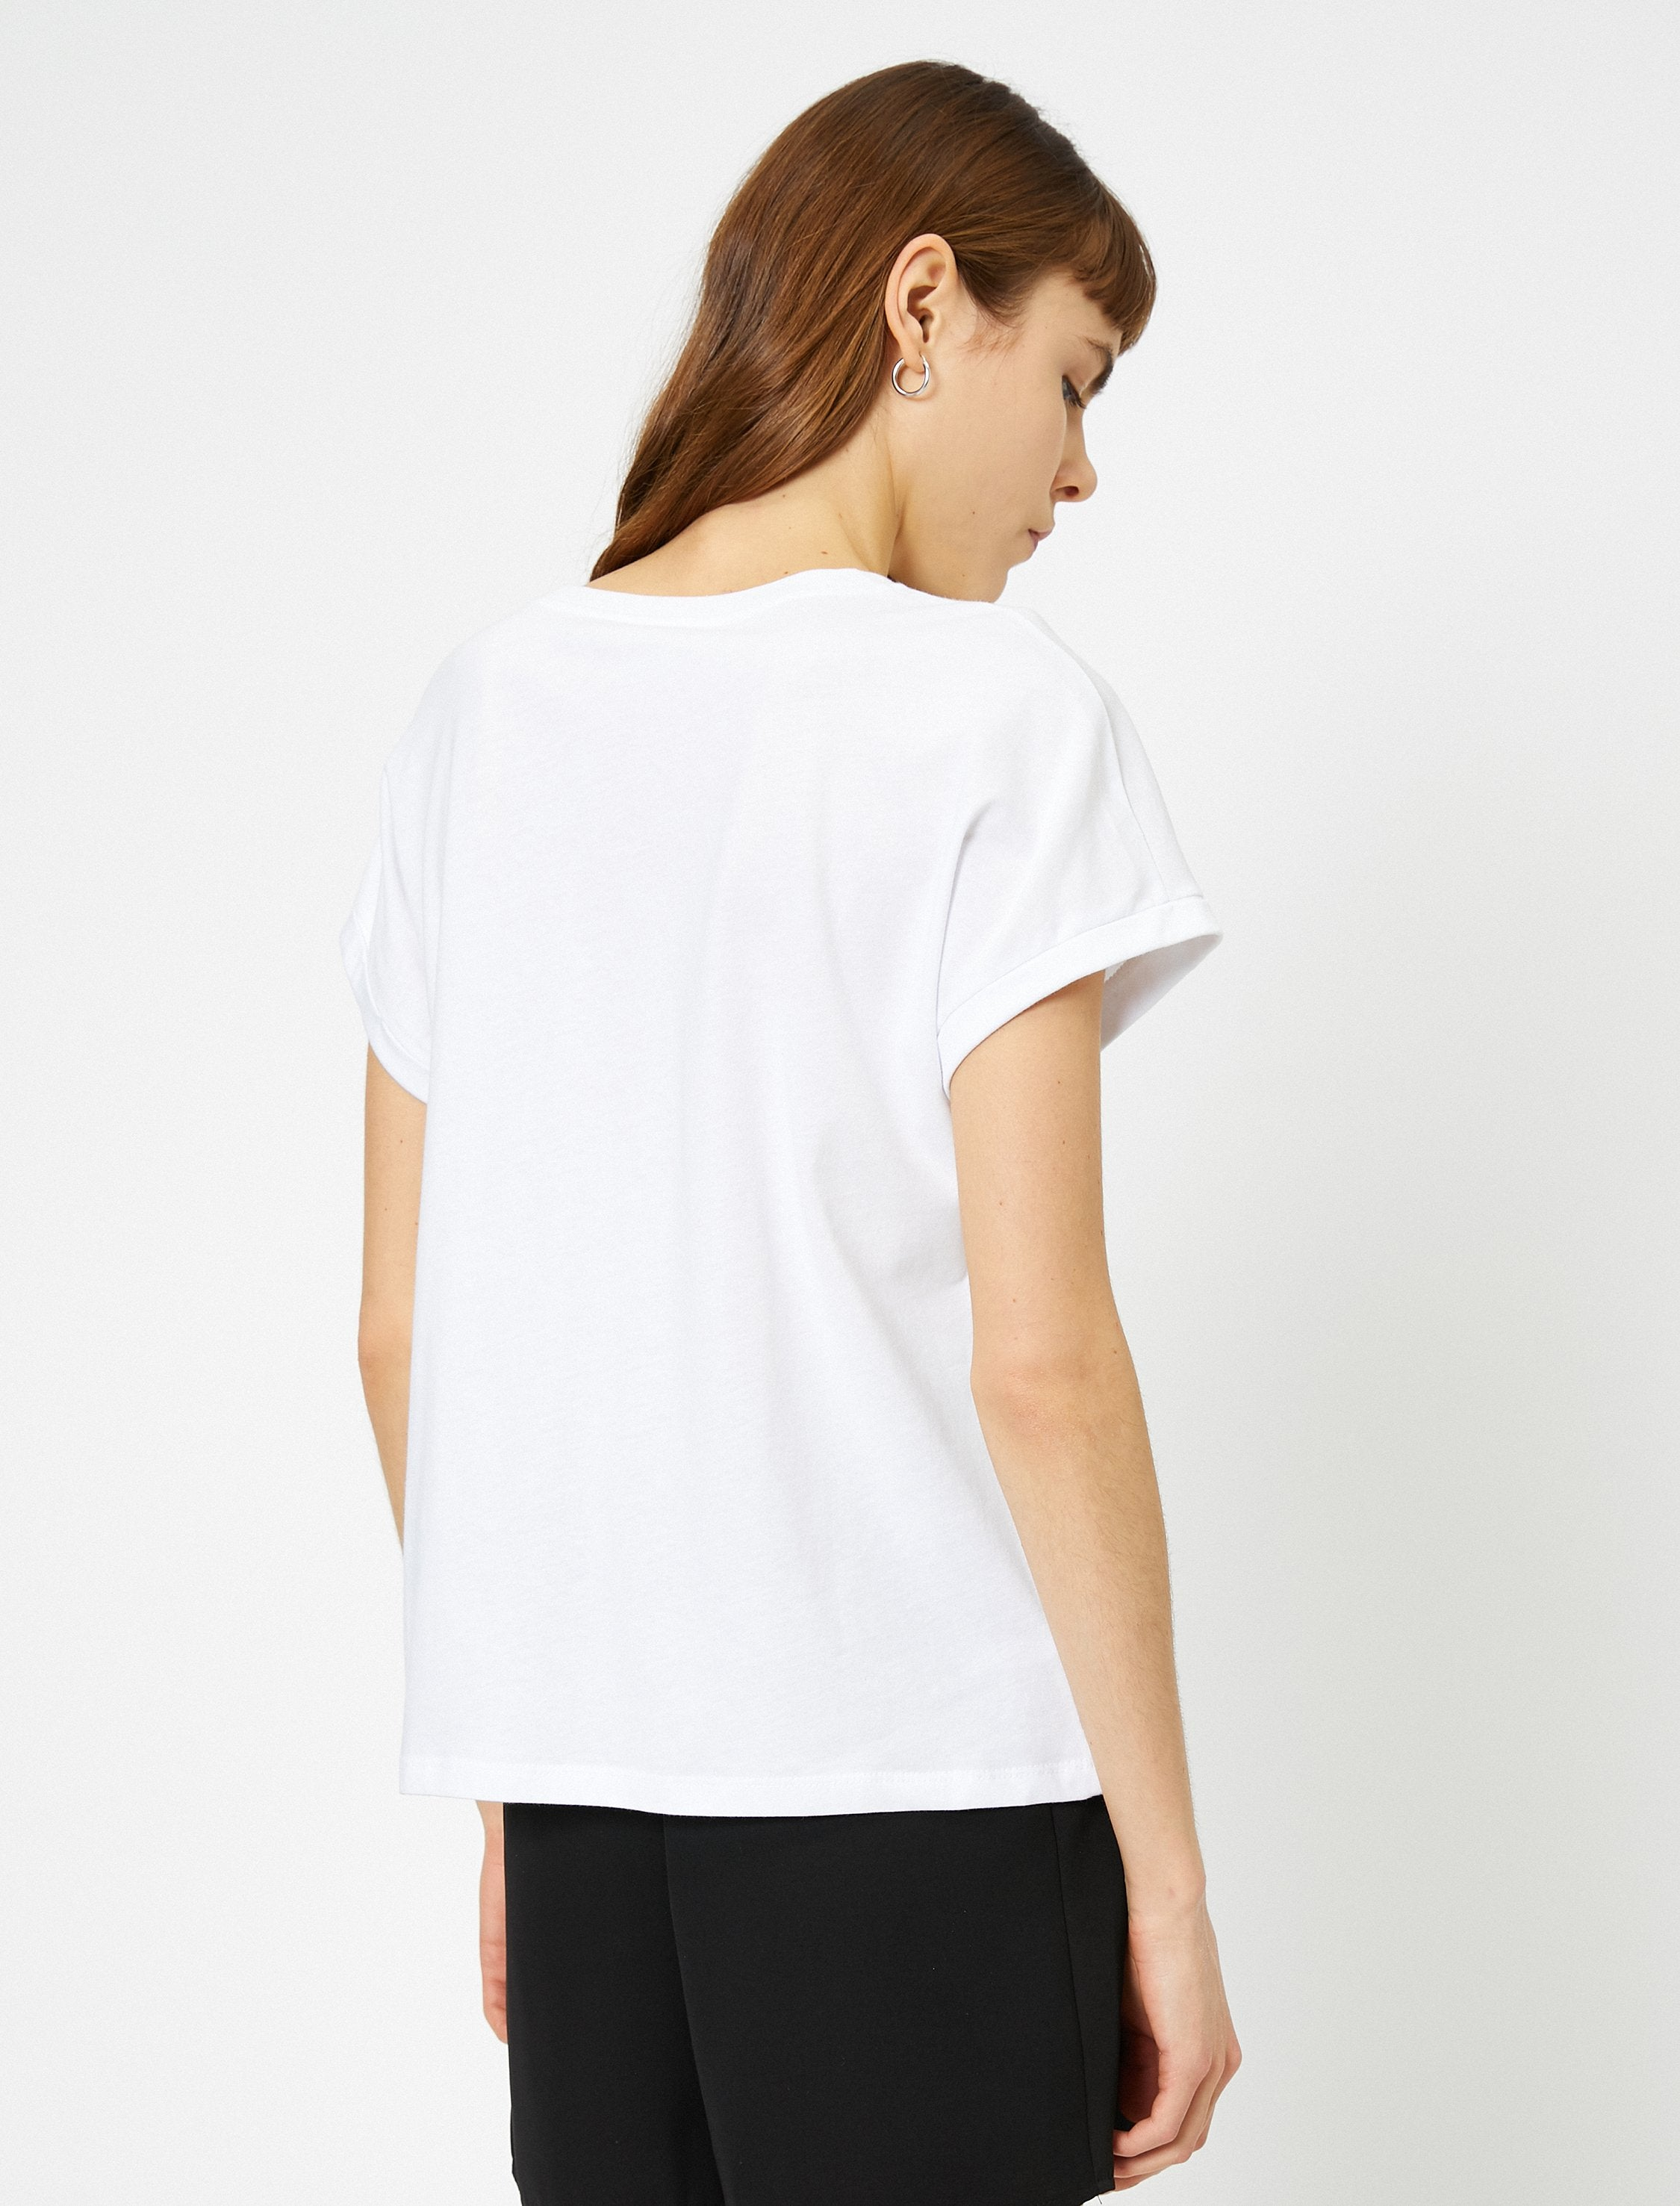 Scoop Neck Tshirt in White